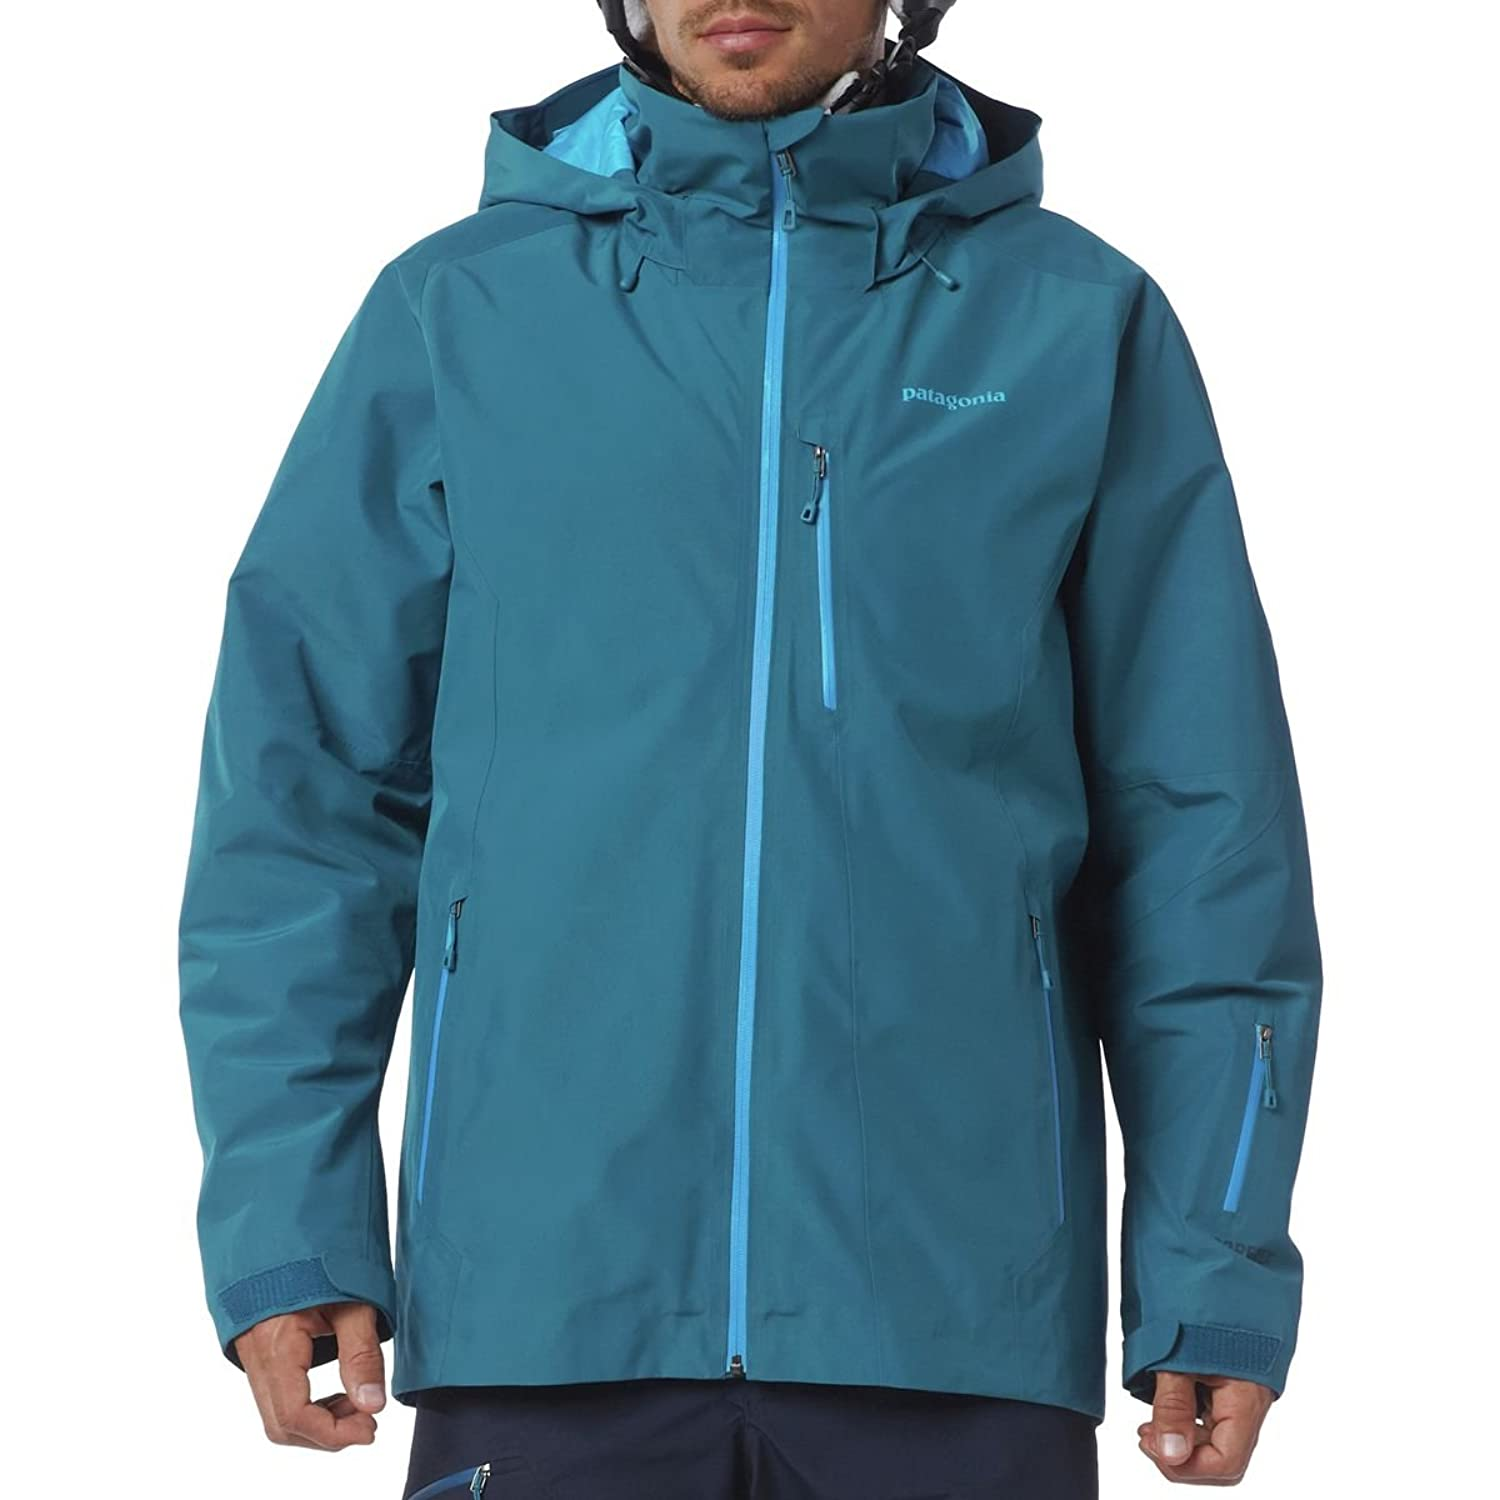 Patagonia M Insulated Powder Bowl Jacket - Underwater Blue - L - Wasserdichte isolierte Herren Gore-Tex® Ski- und Snowboardjacke